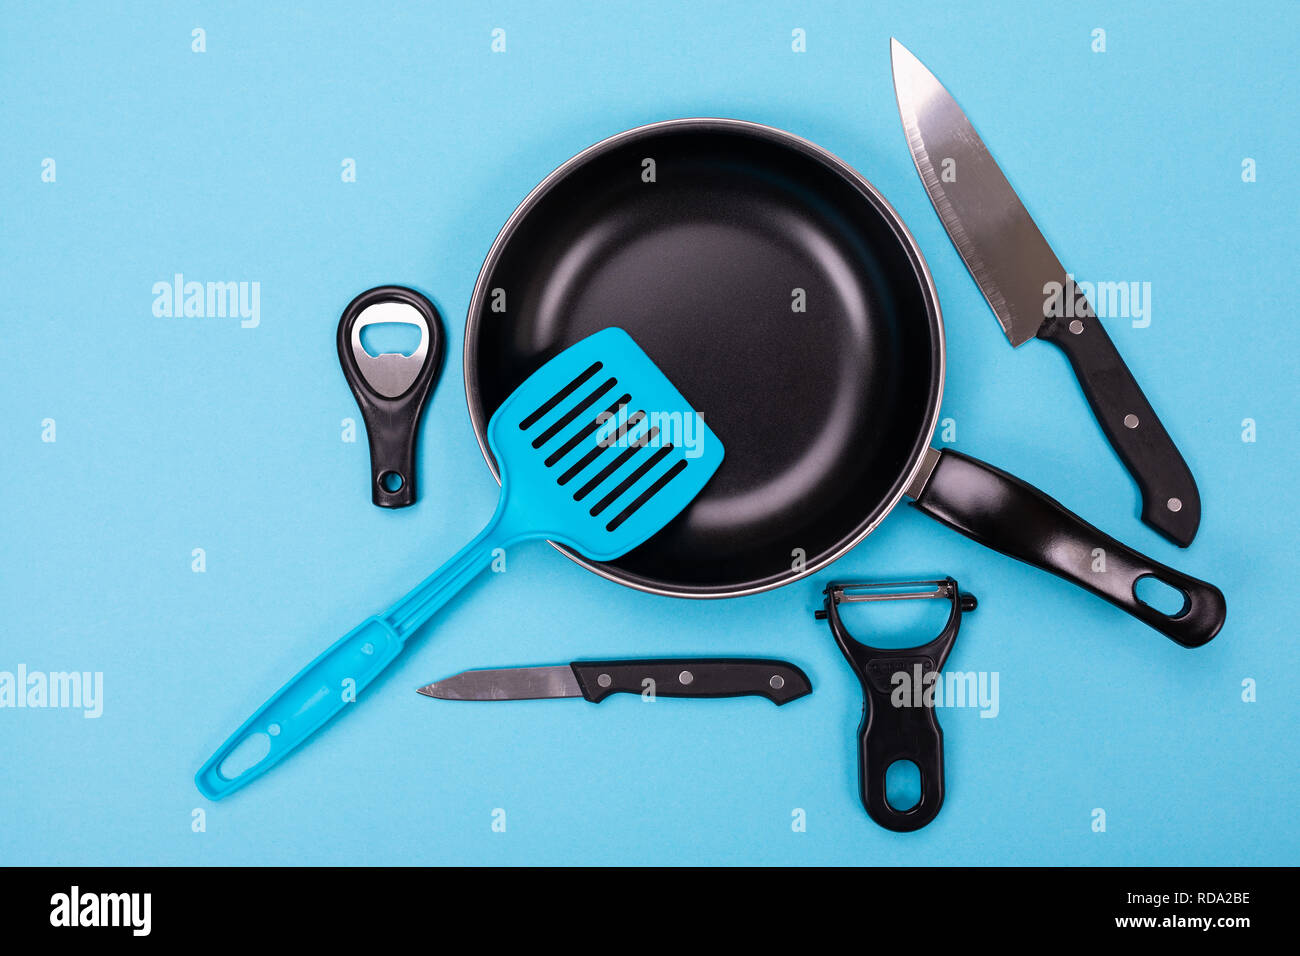 Close up picture of group of kitchen utensils with copyspace on blue background - Stock Image